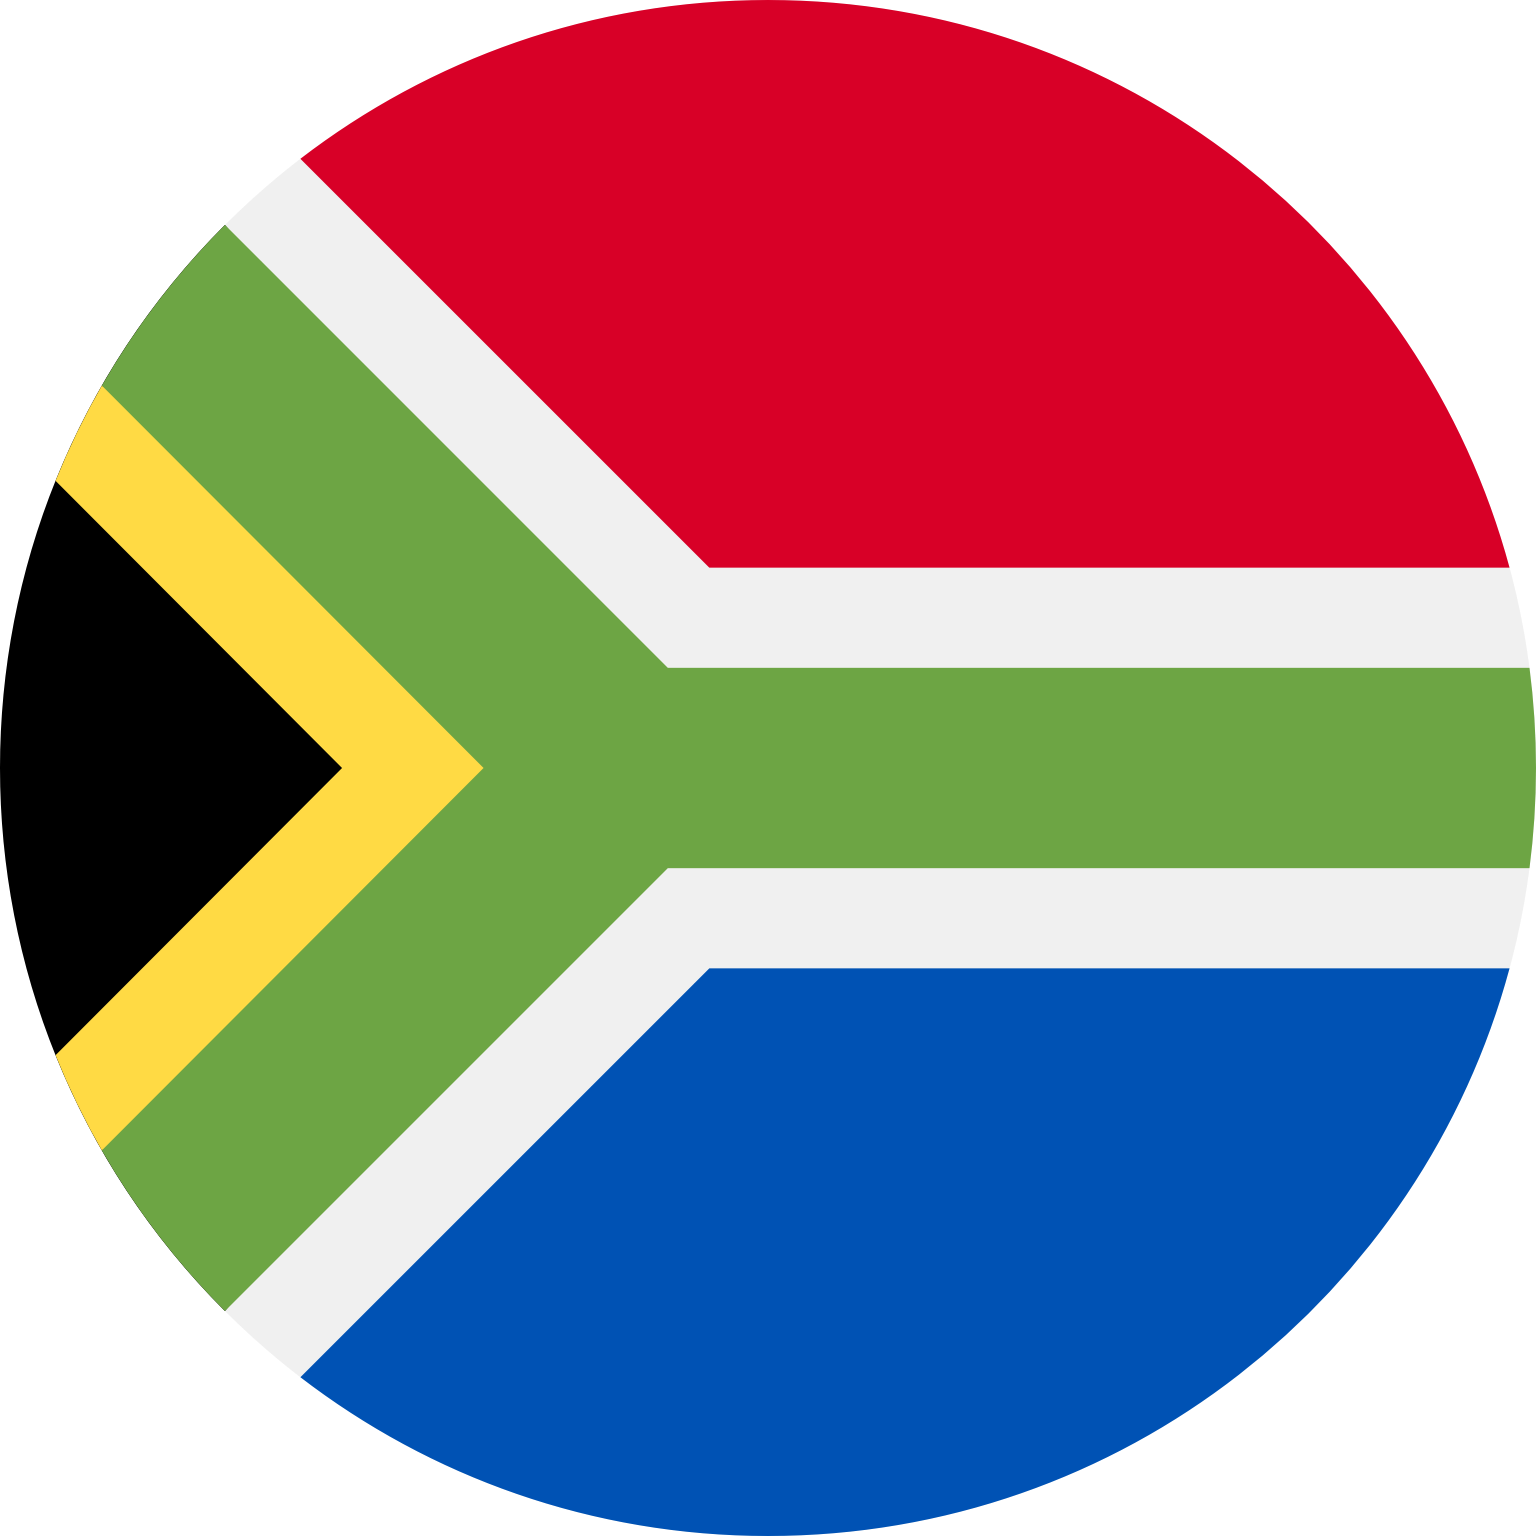 https://softball-qualifier.nl/wp-content/uploads/2019/07/south-africa-1.png